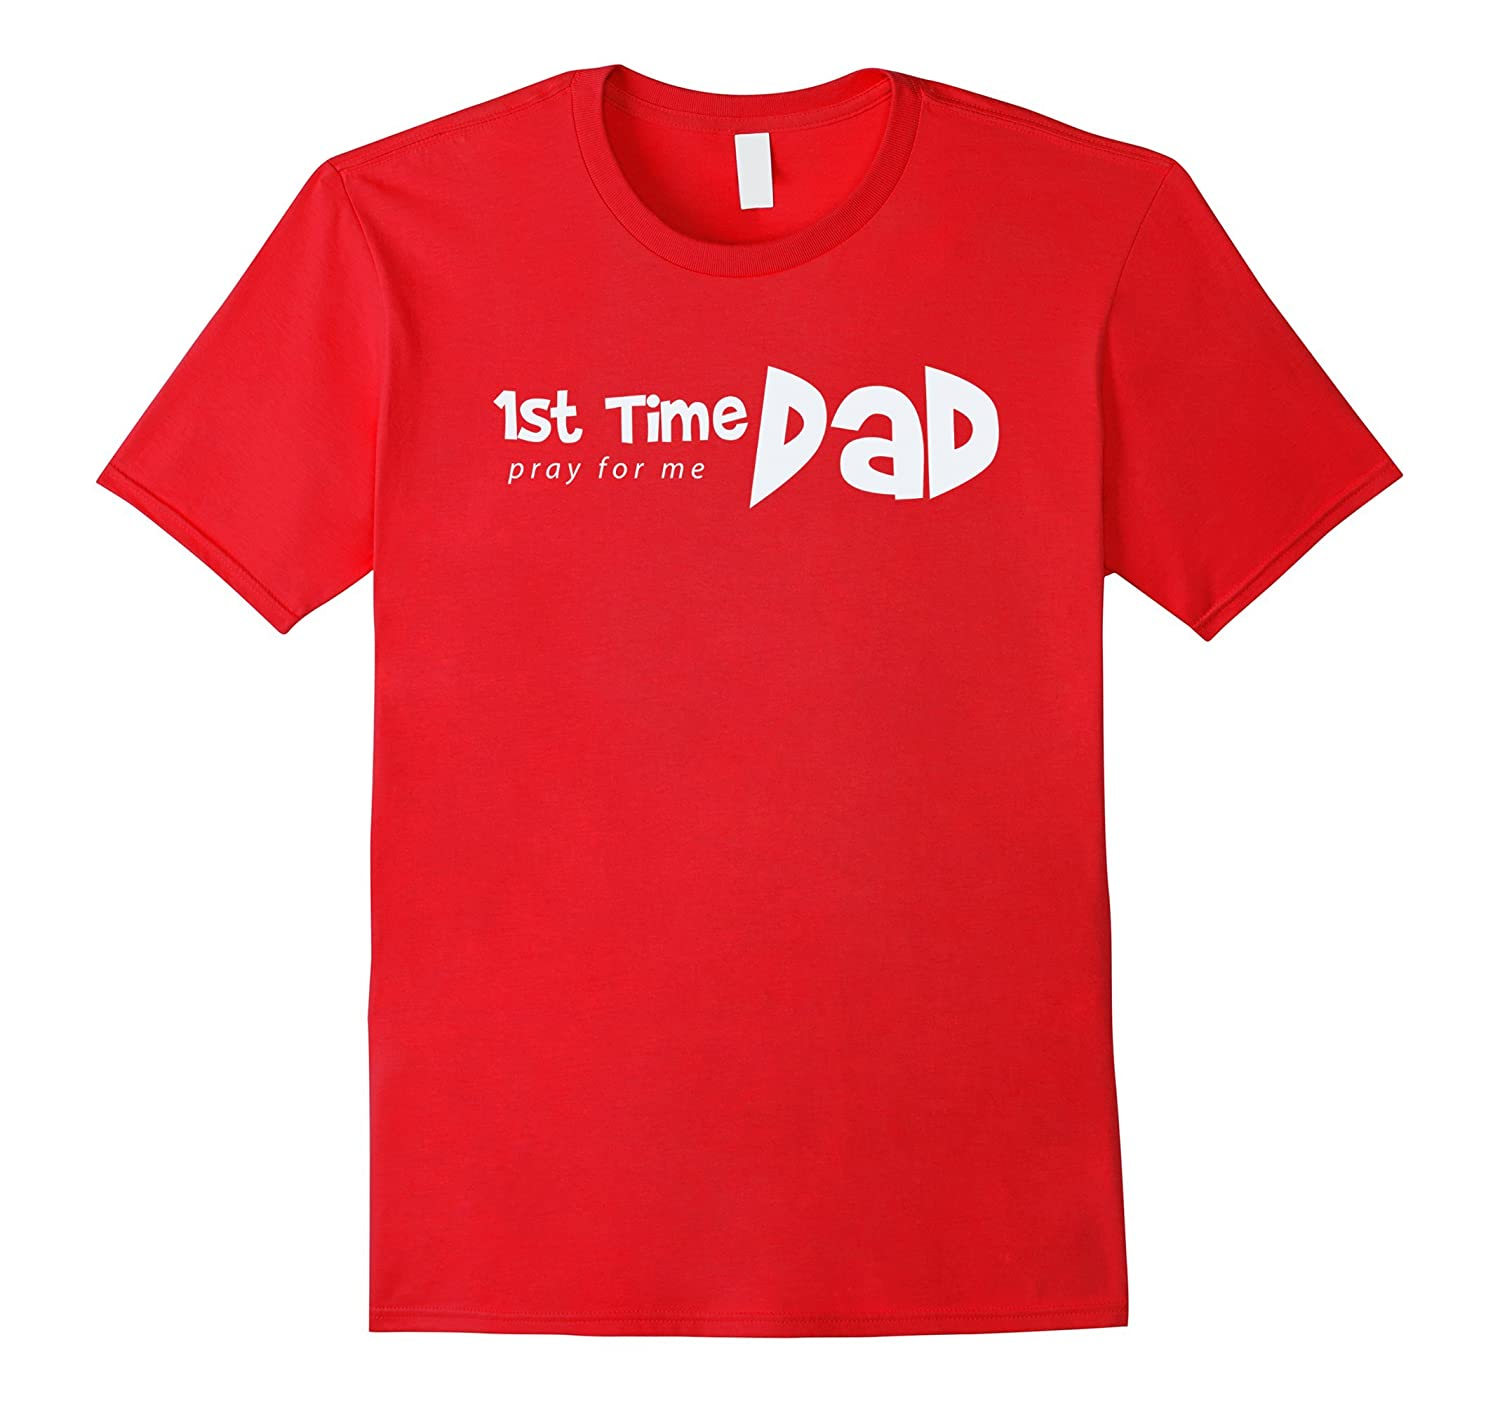 1st Time Dad - Pray for me - Funny Saying Father Daddy Shirt-Vaci